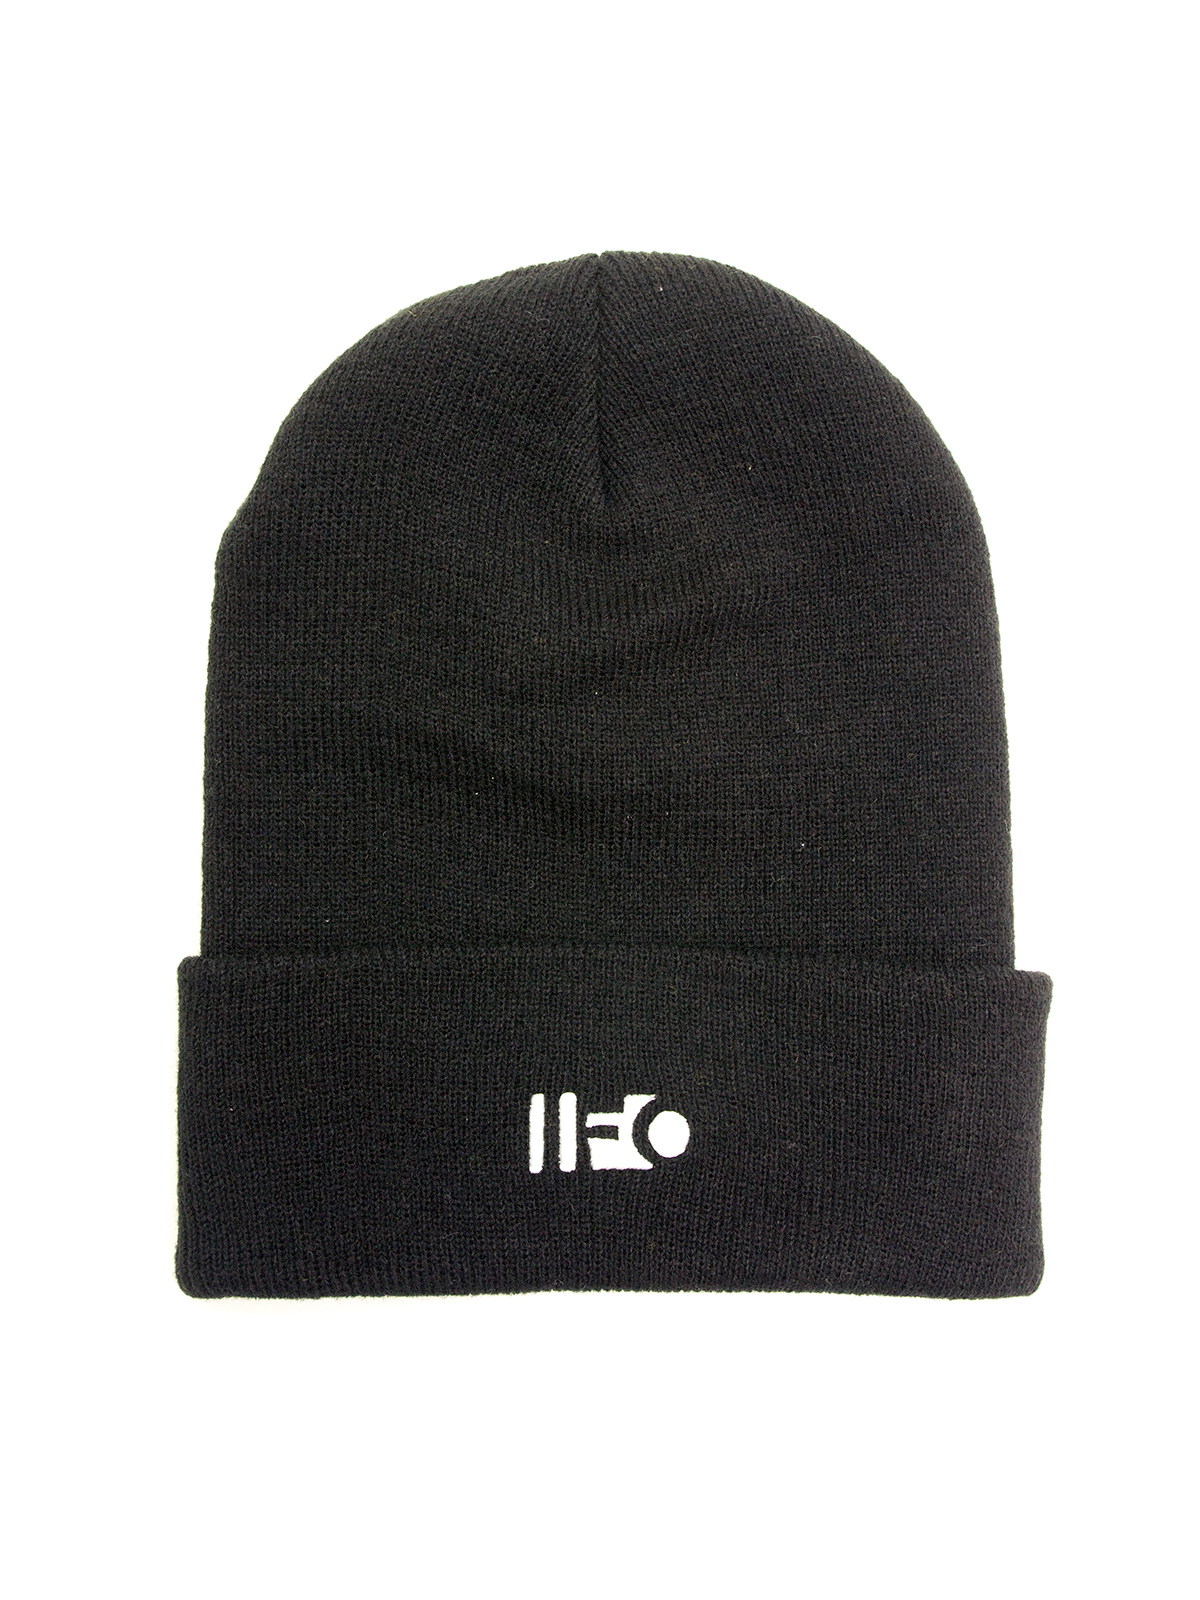 CUFF-BEANIE_black_shop1